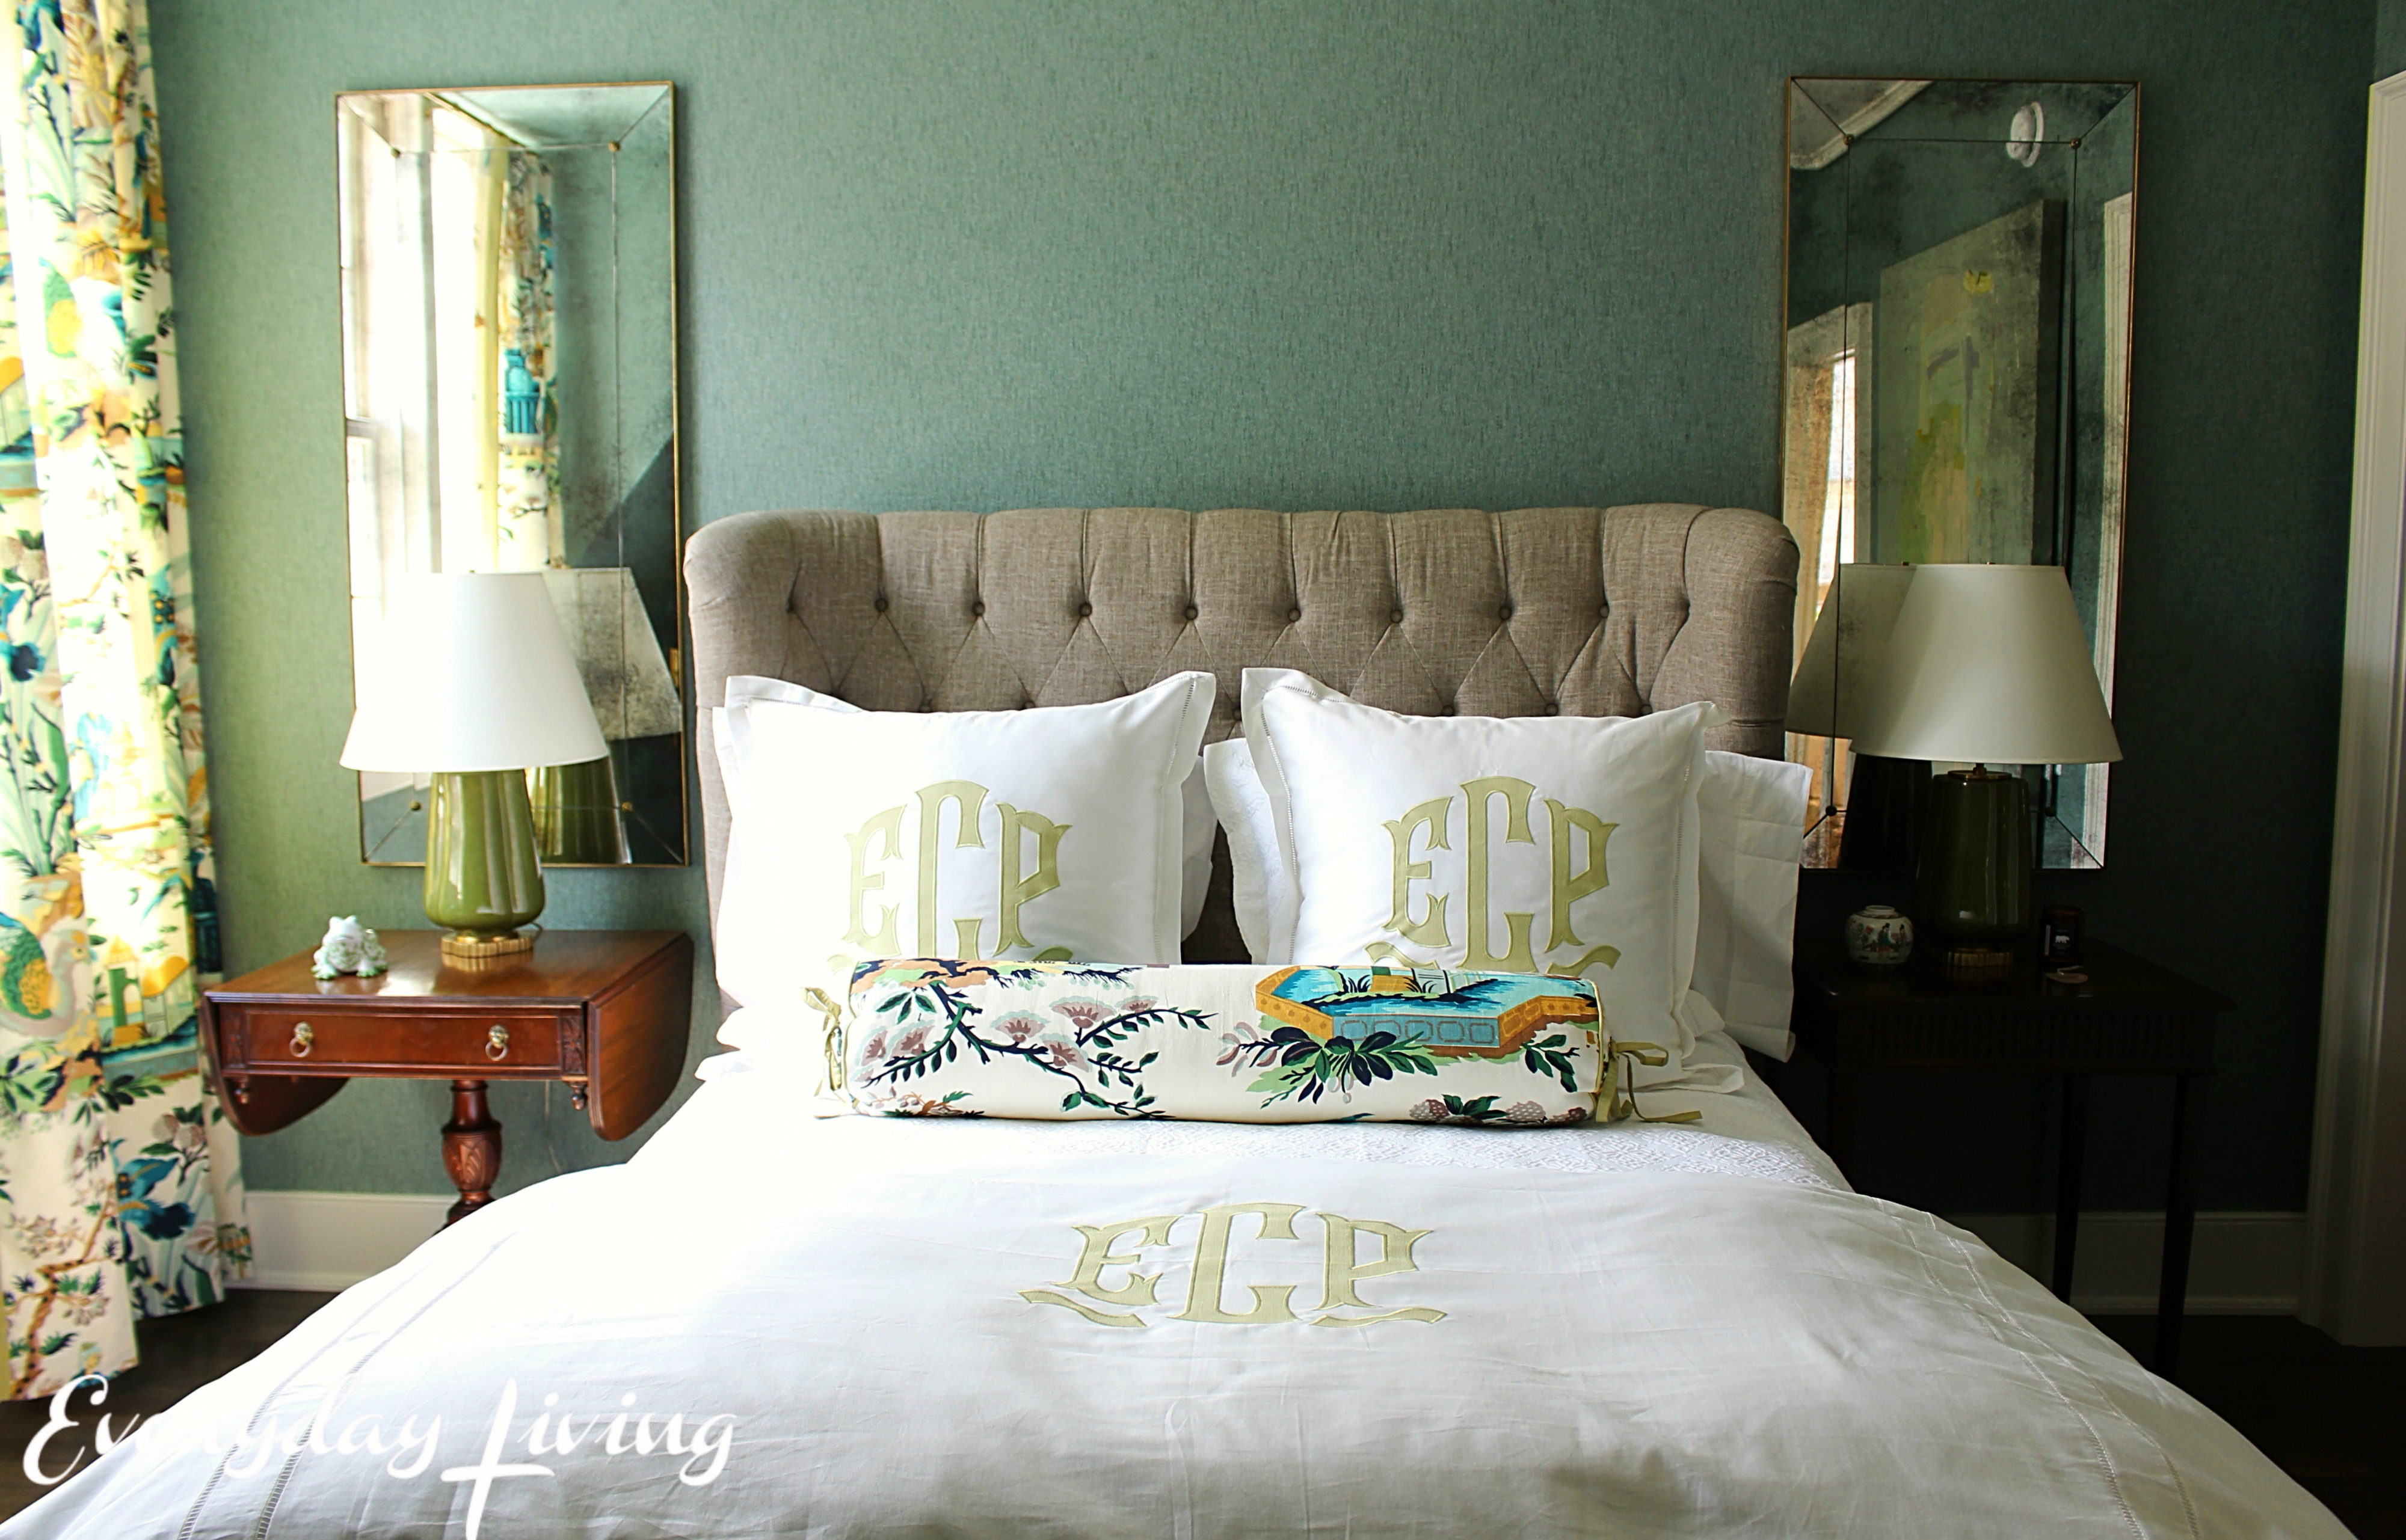 southern living associate decorating editor elly poston designed this bedroom featuring the living collection for